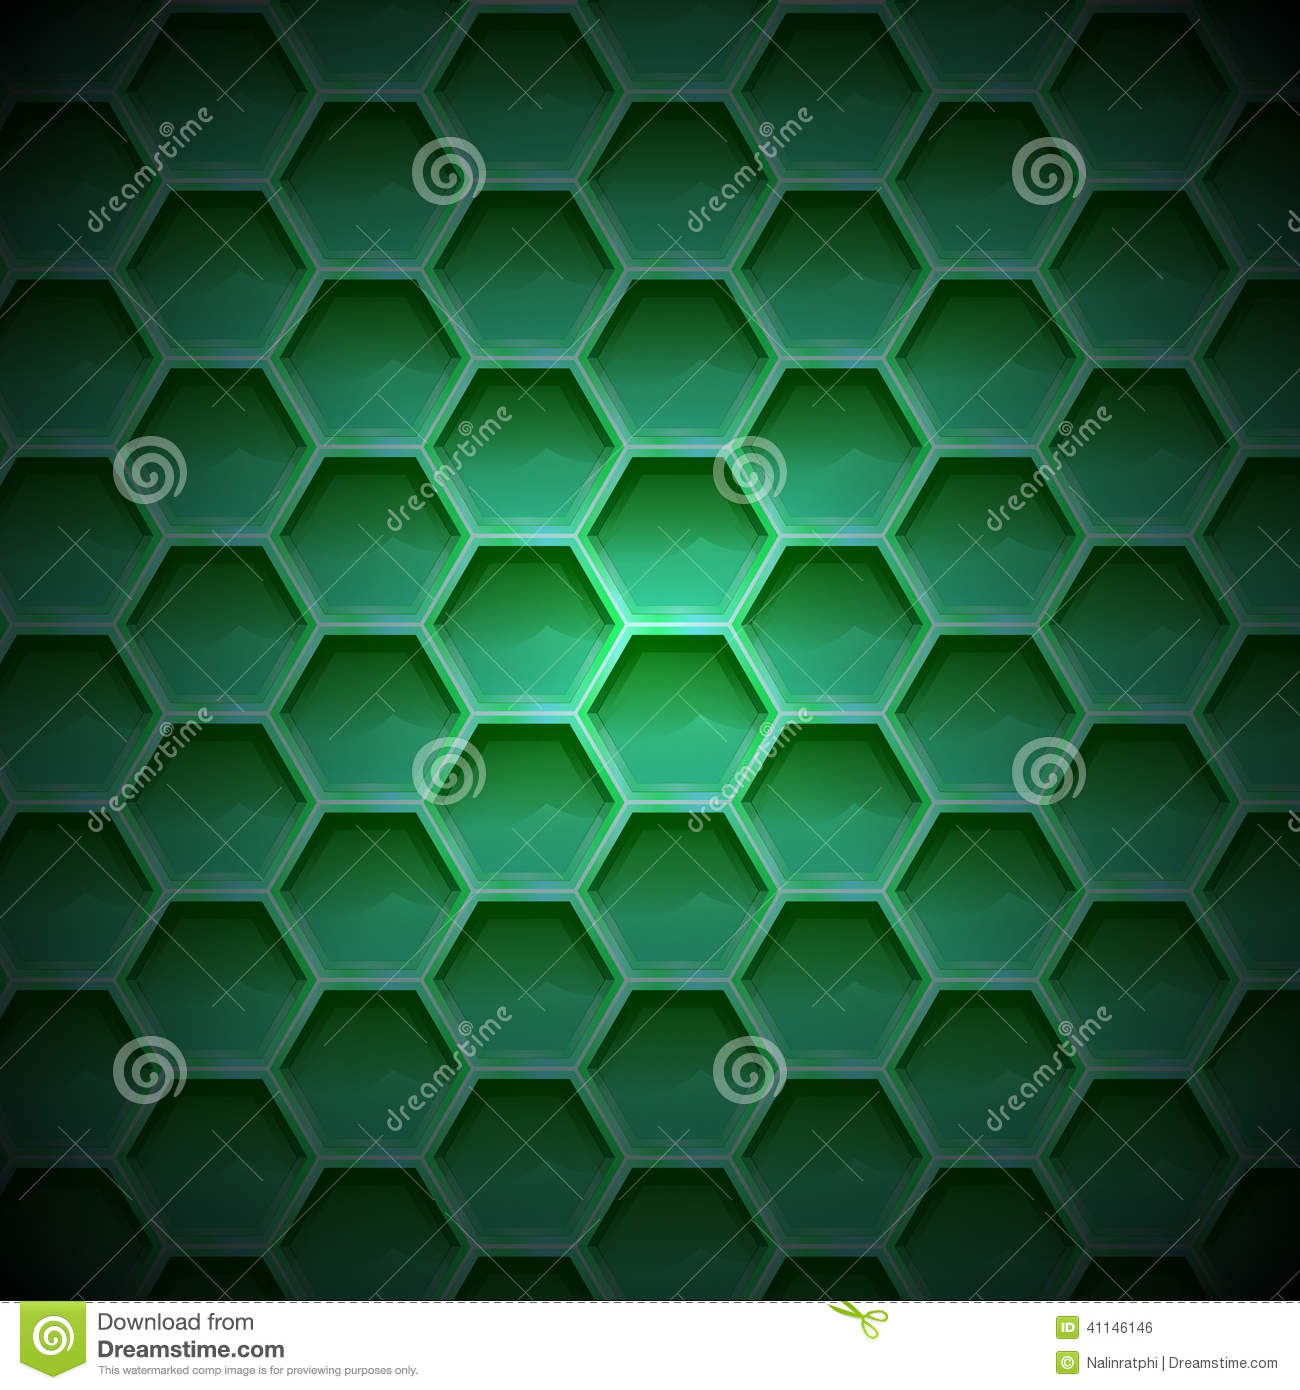 Create green color honeycomb background texture